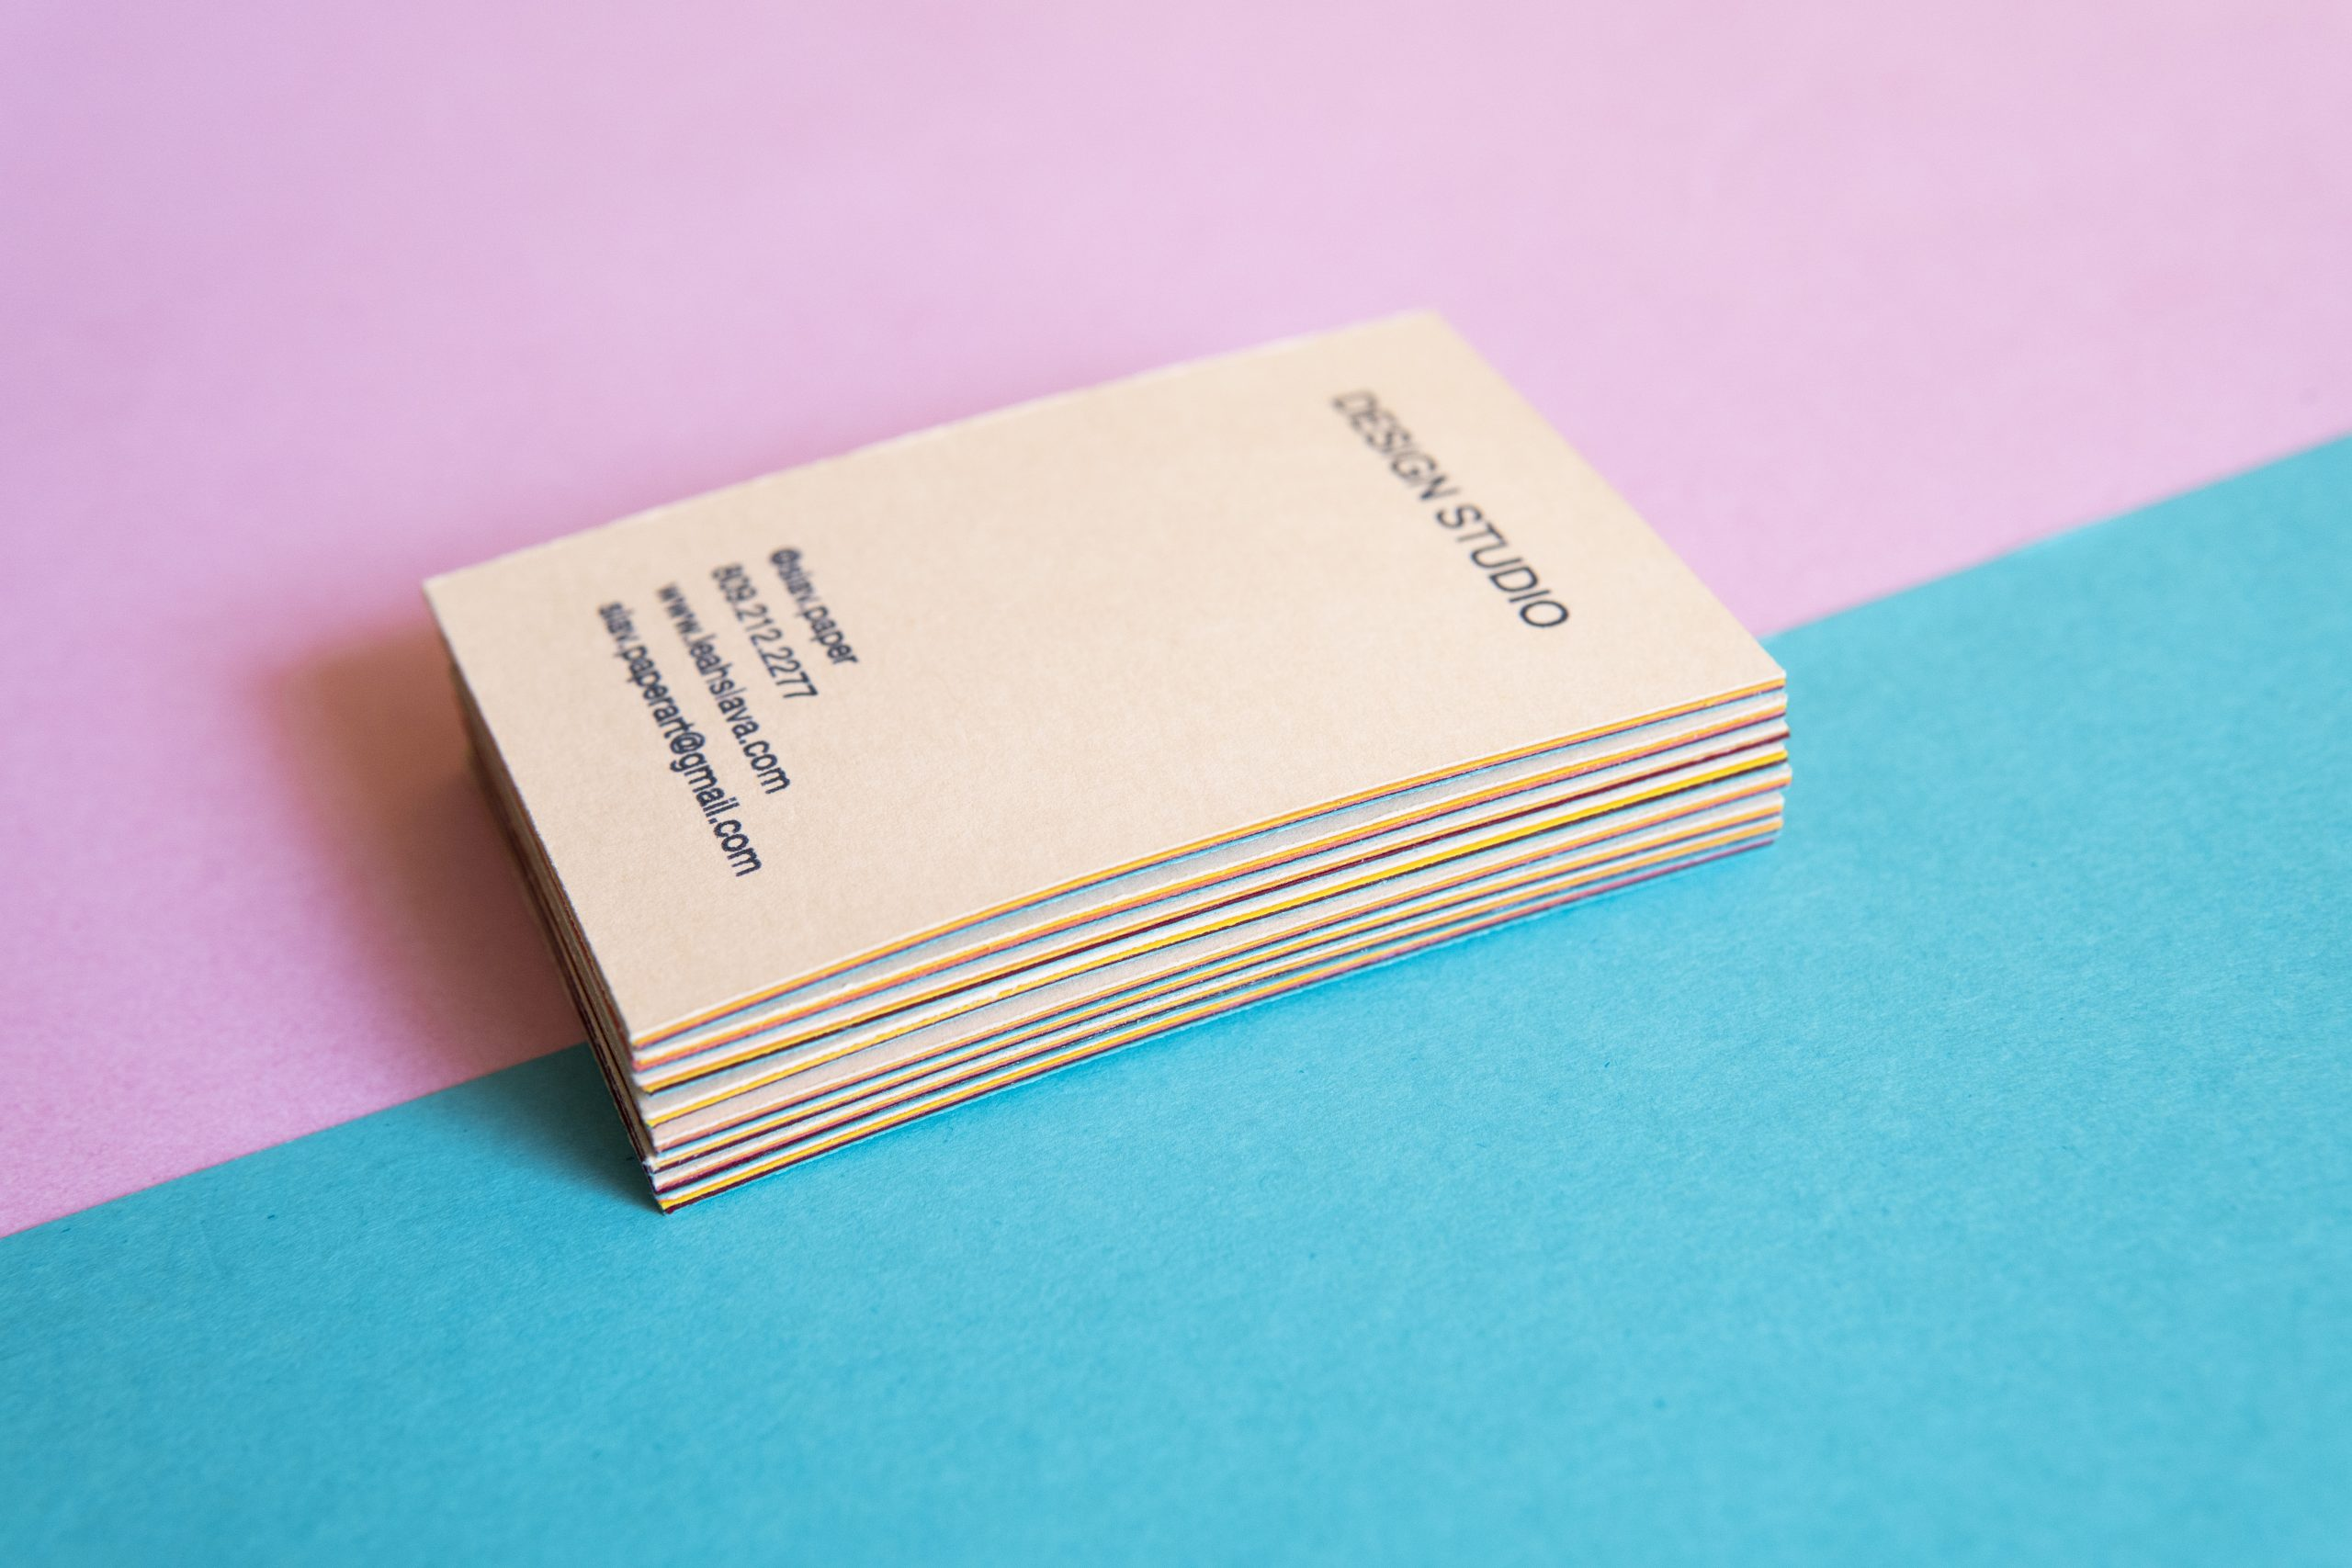 Slav Design Studio business card_4